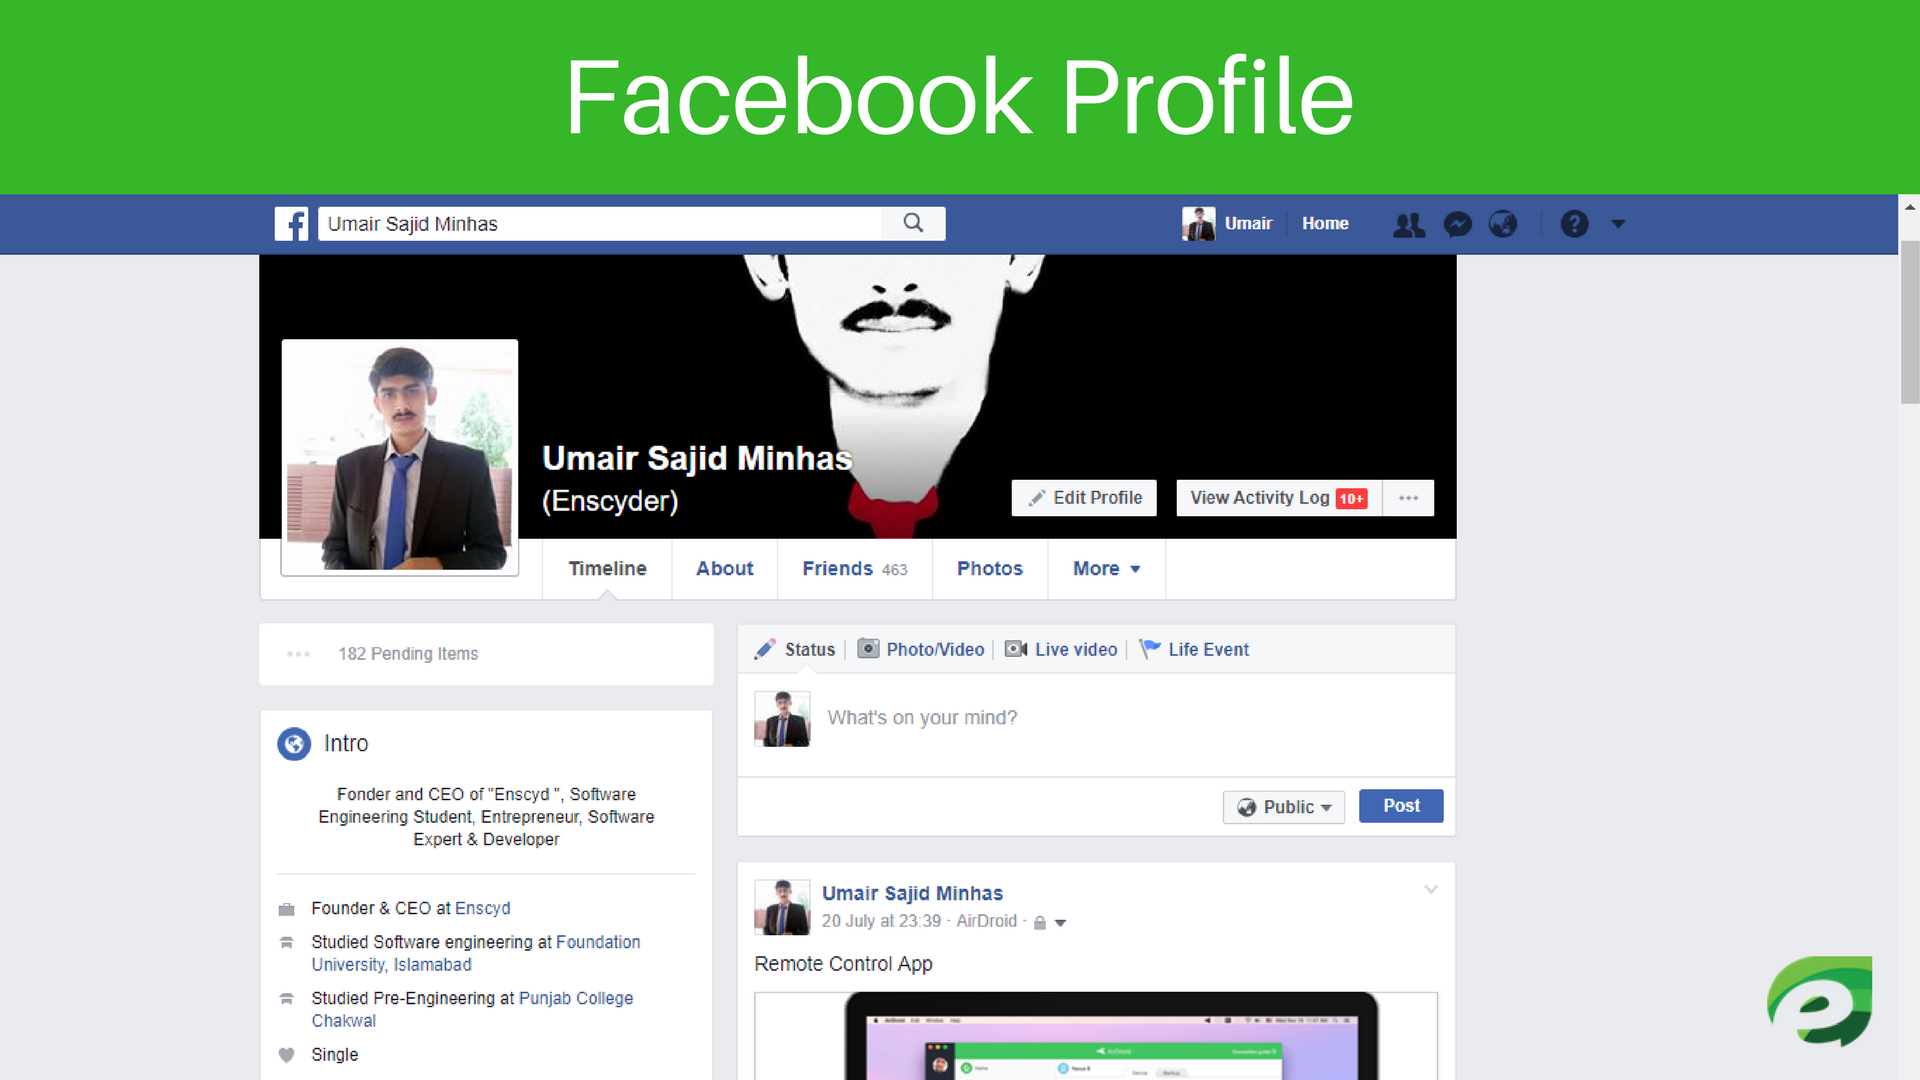 Facebook Profile - How Facebook Works